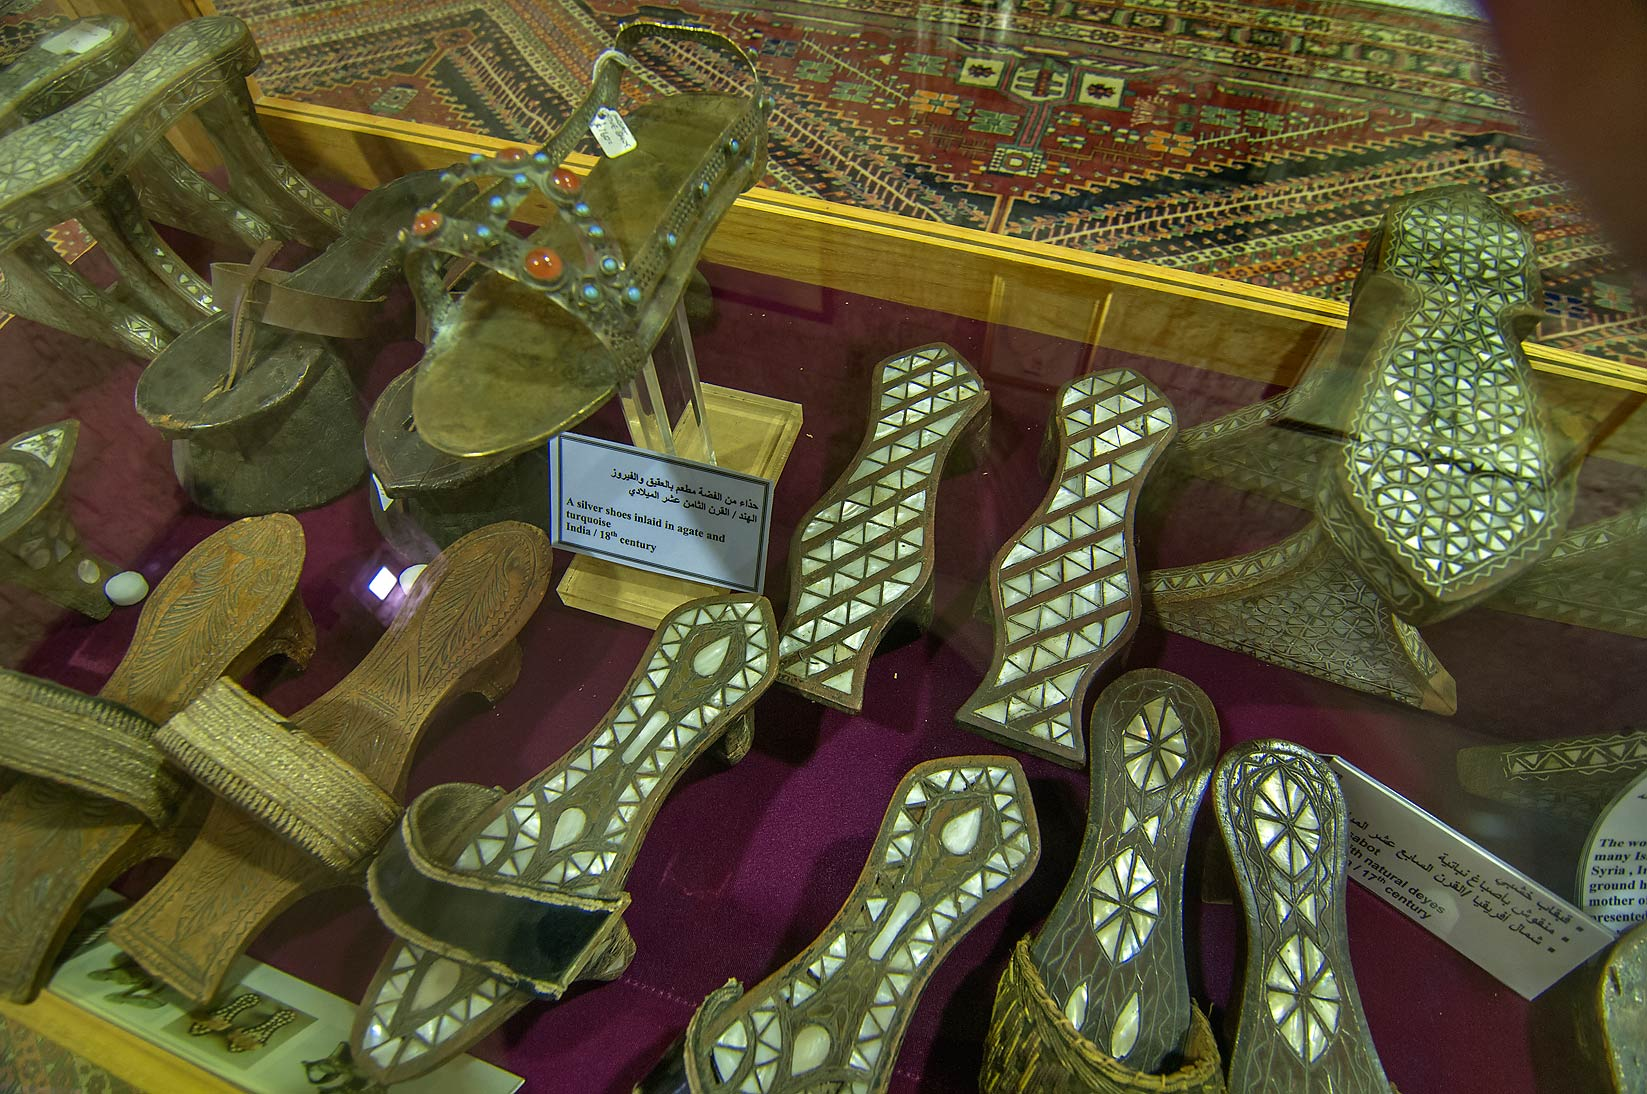 Antique women's shoes in Sheikh Faisal Bin Qassim...Museum near Al-Shahaniya. Doha, Qatar